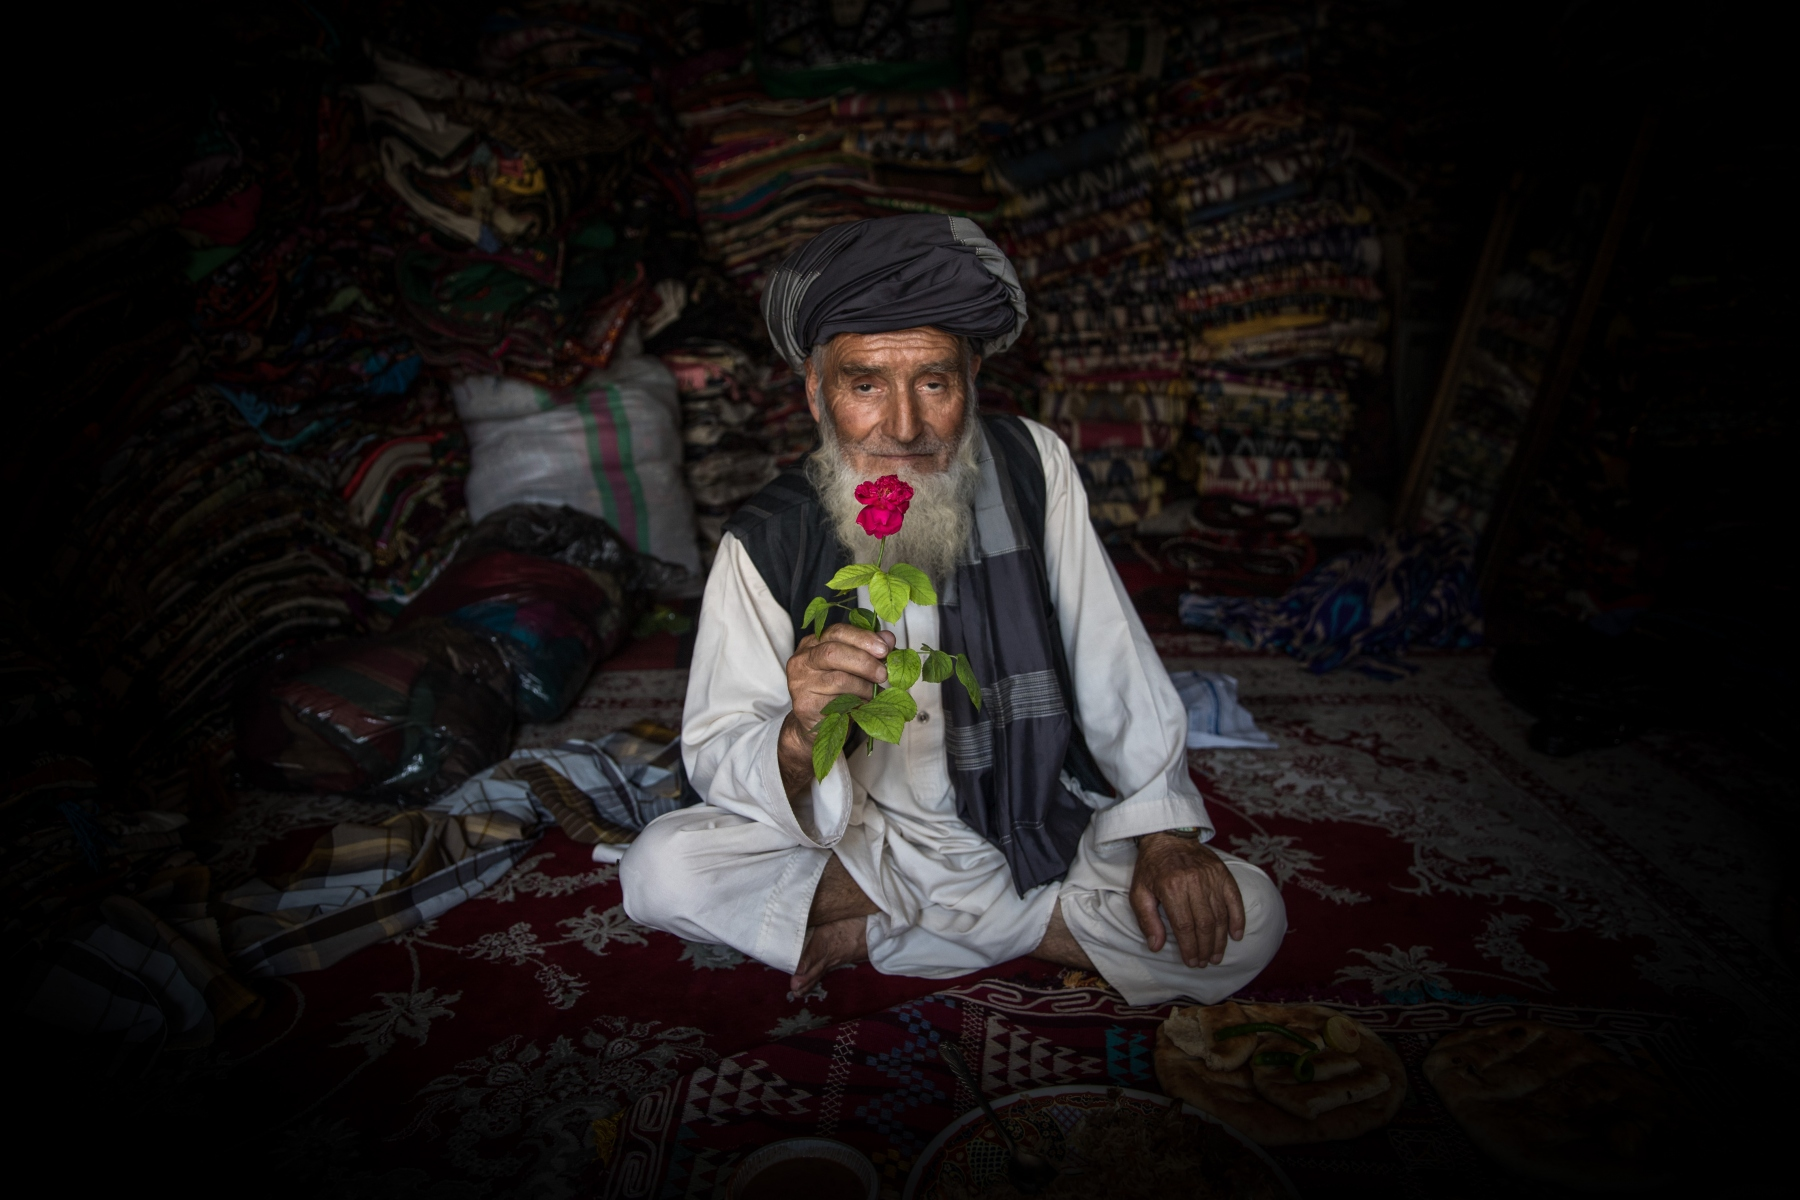 Atta Mohammad is 73 years old, he is from Baghlan. He doesn't work but used to be a mecanician. What he loves over all about flowers is their scent. His favorite flower is the pink rose. Flowers bring him a lot of contentment , and he grows a few of them in his garden.